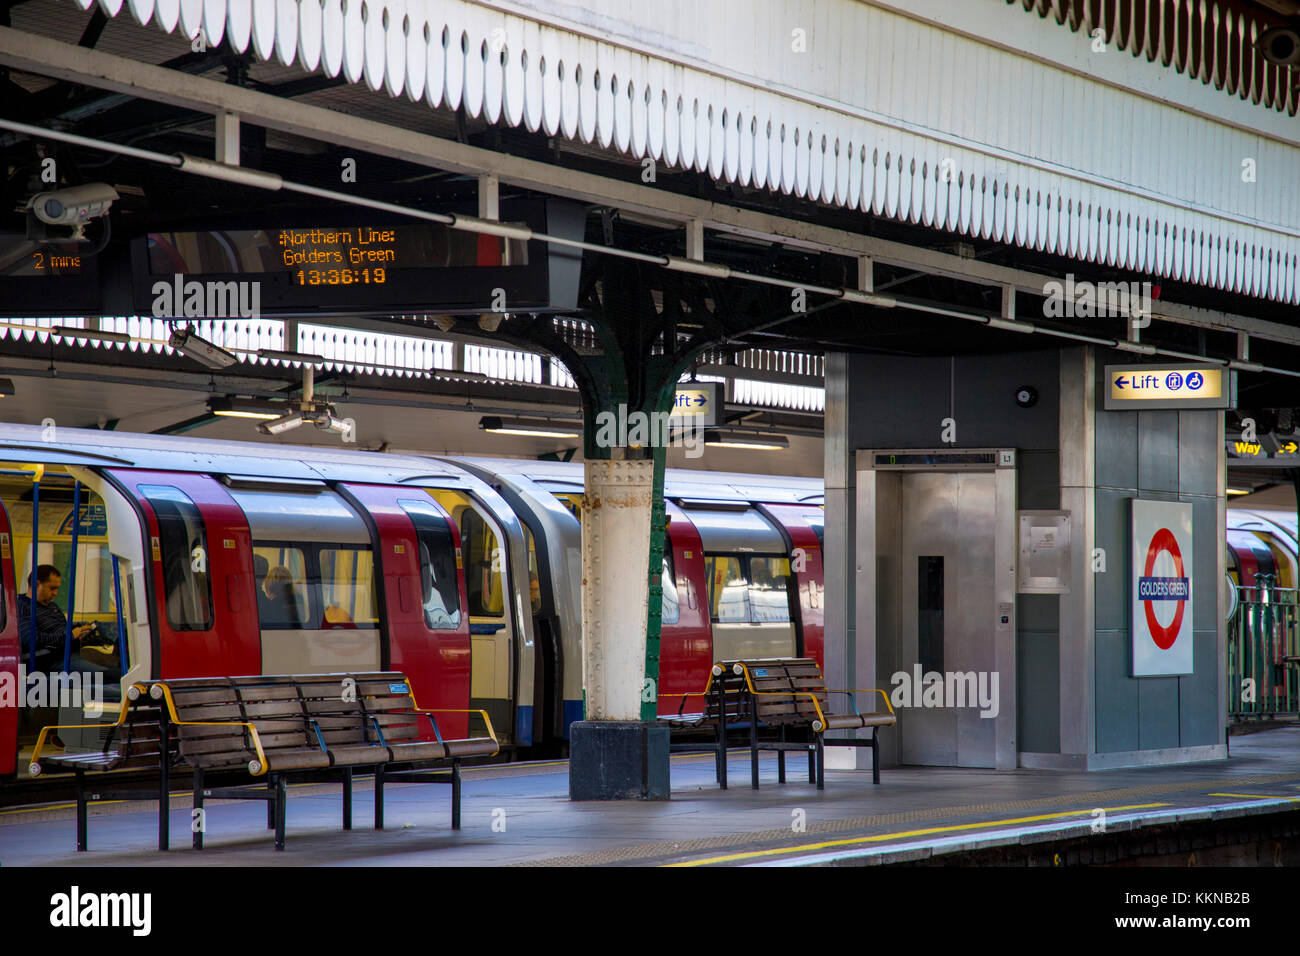 Golders Green tube station on London's Northern Line subway network Stock Photo